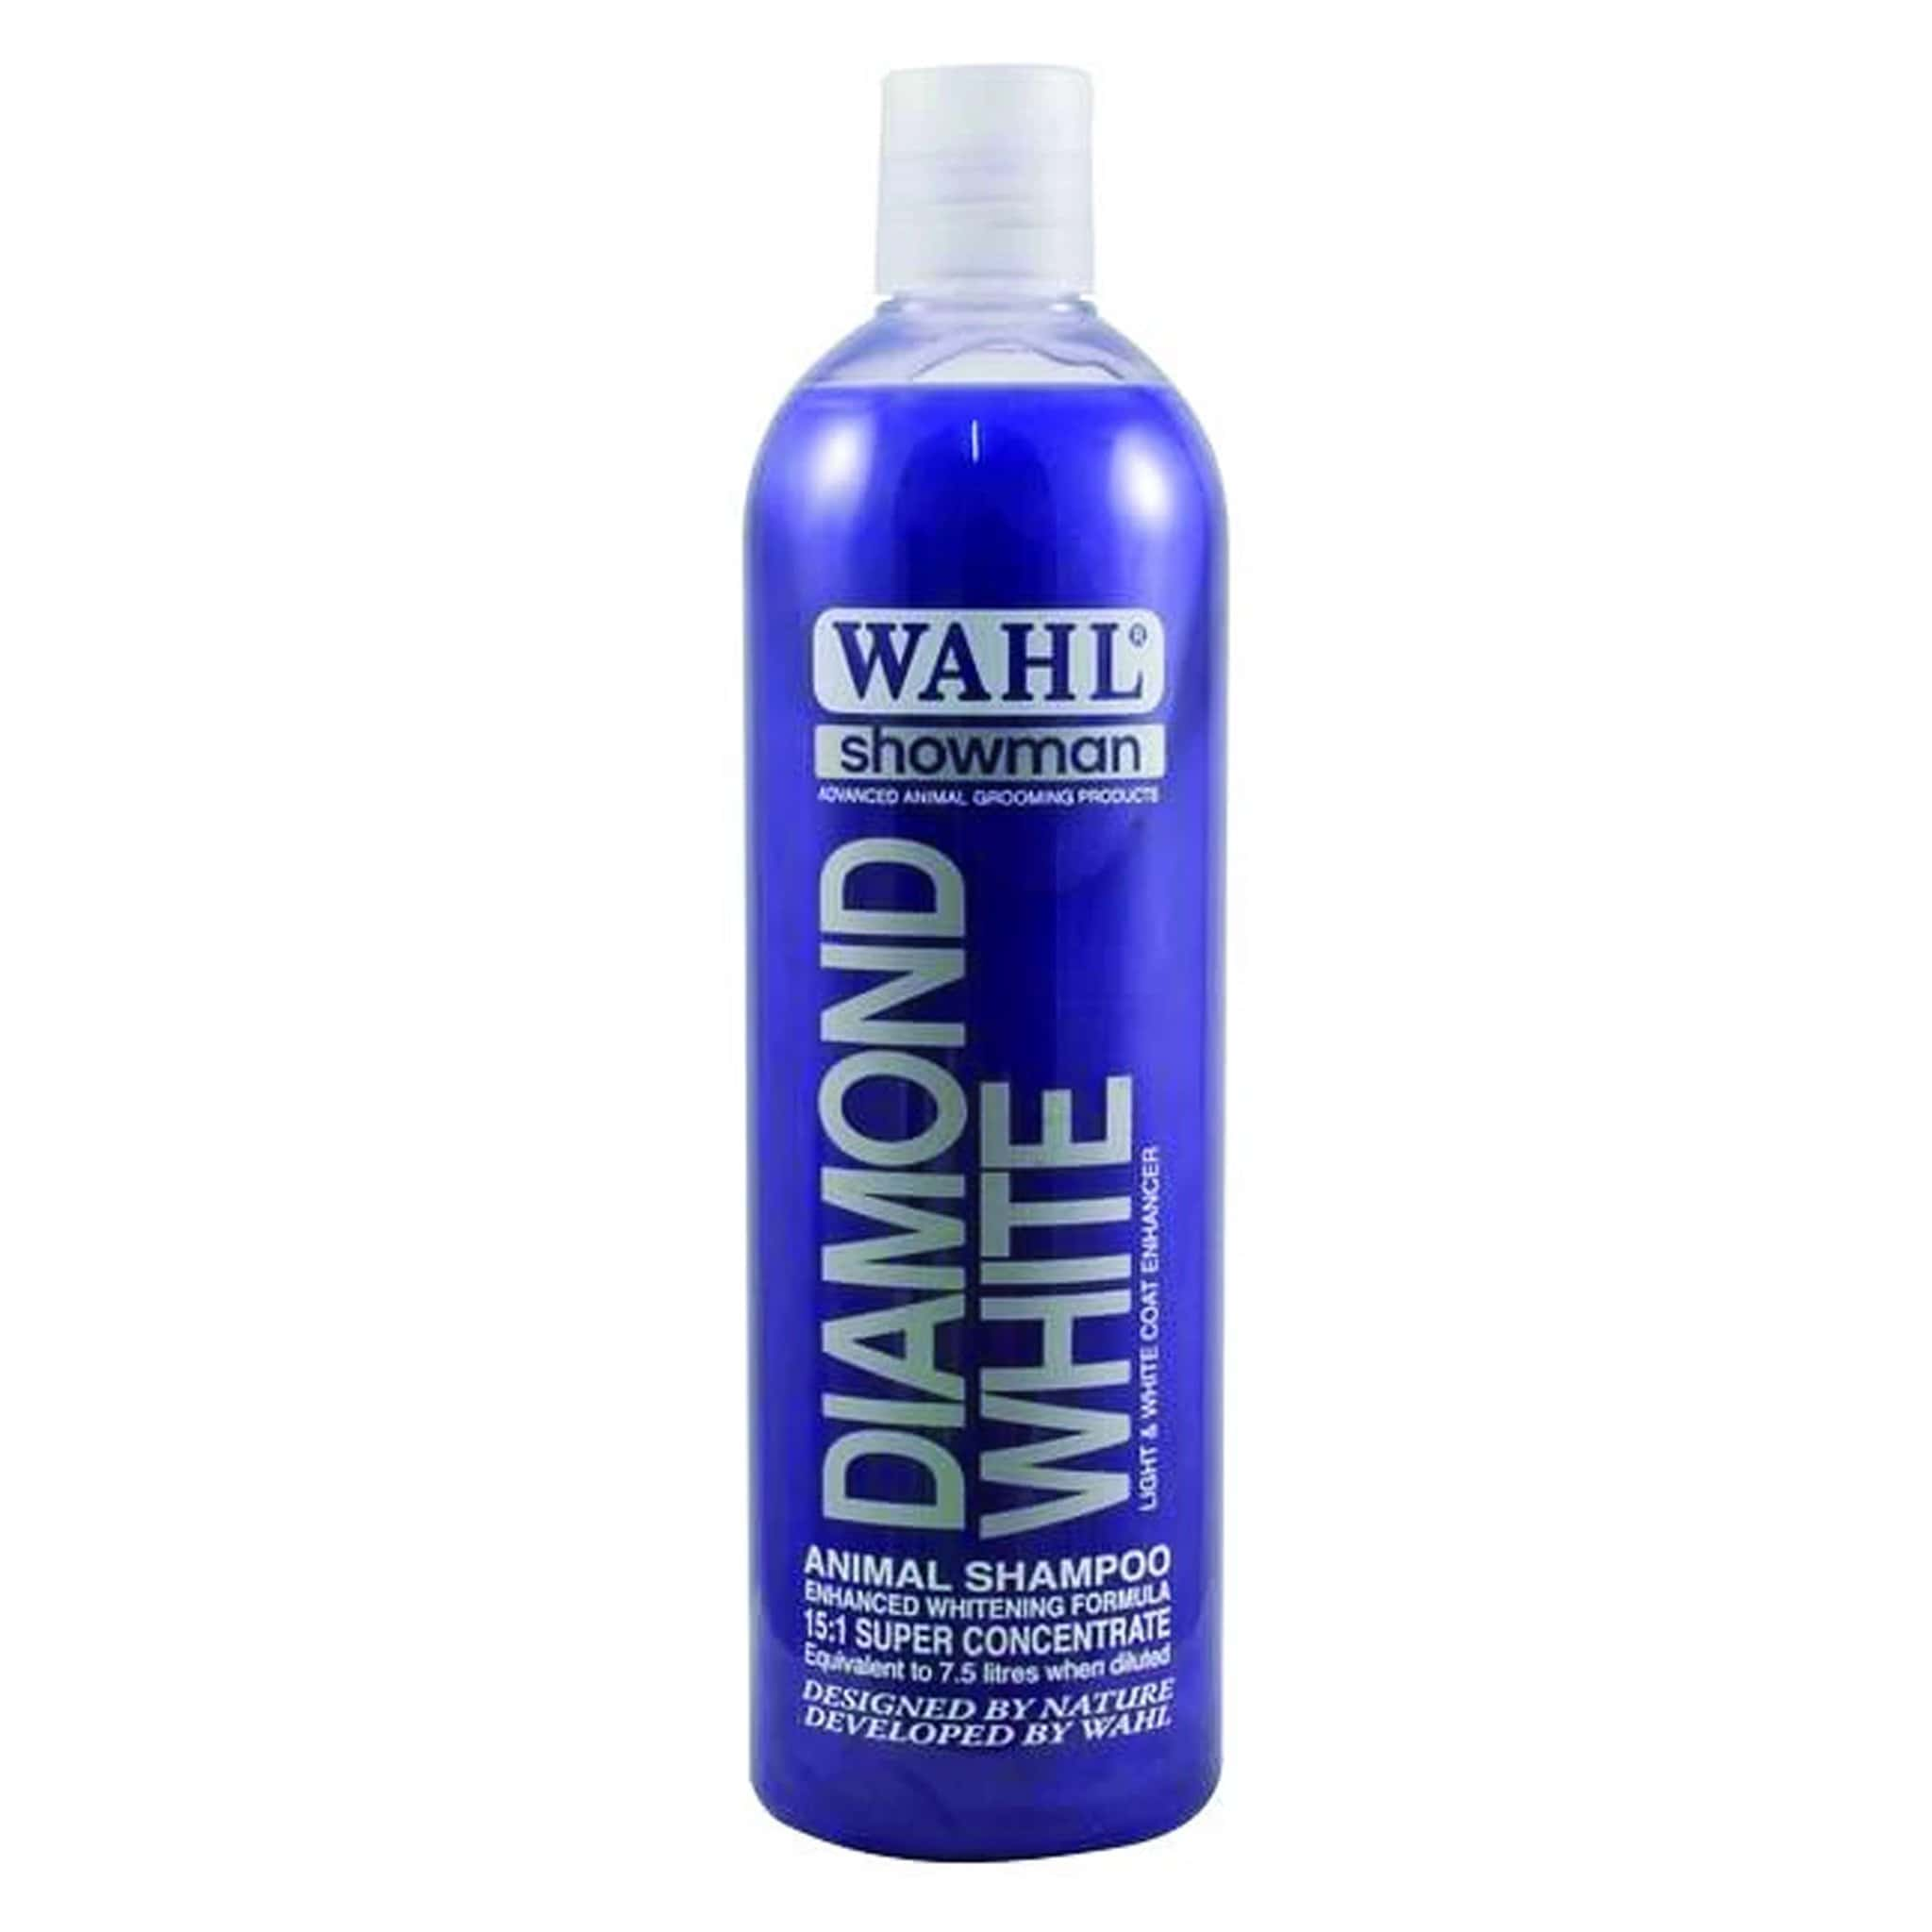 Wahl Showman Diamond White Shampoo 500ml WHL0110